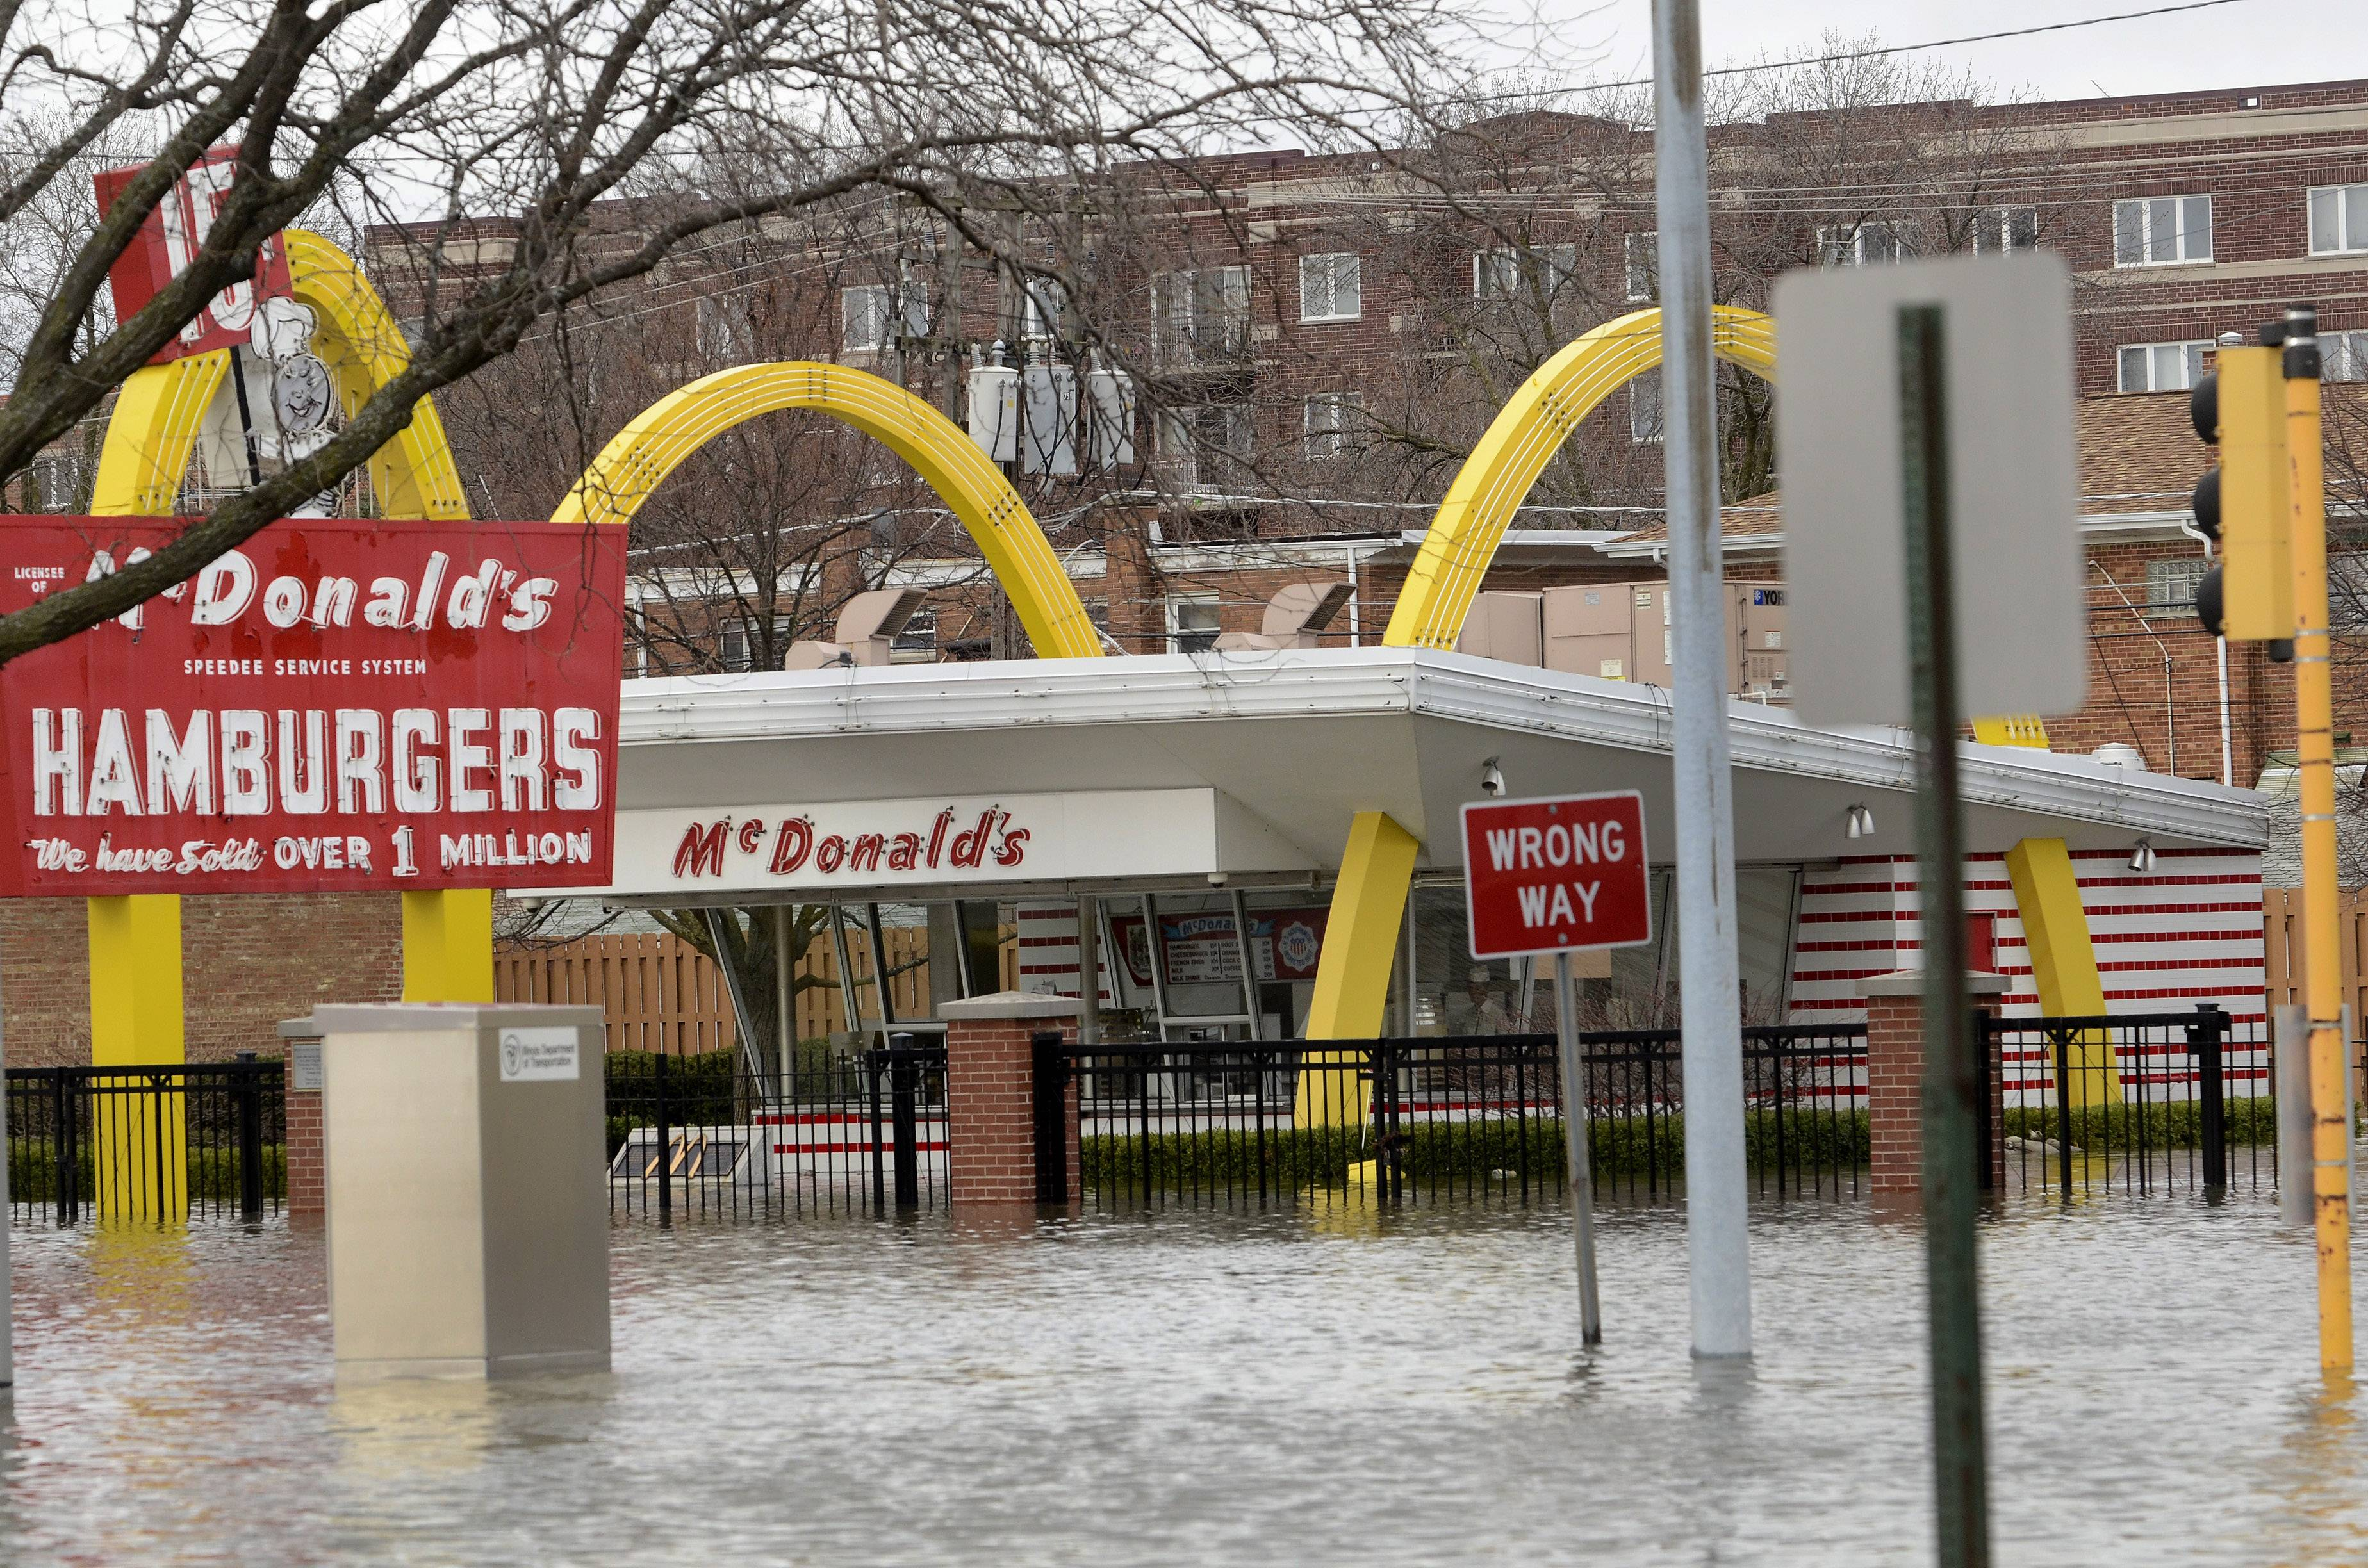 Floodwaters surrounded the site of the original McDonald's in Des Plaines in April 2013. The replica museum's location was one reason cited by company officials in deciding to demolish the building.